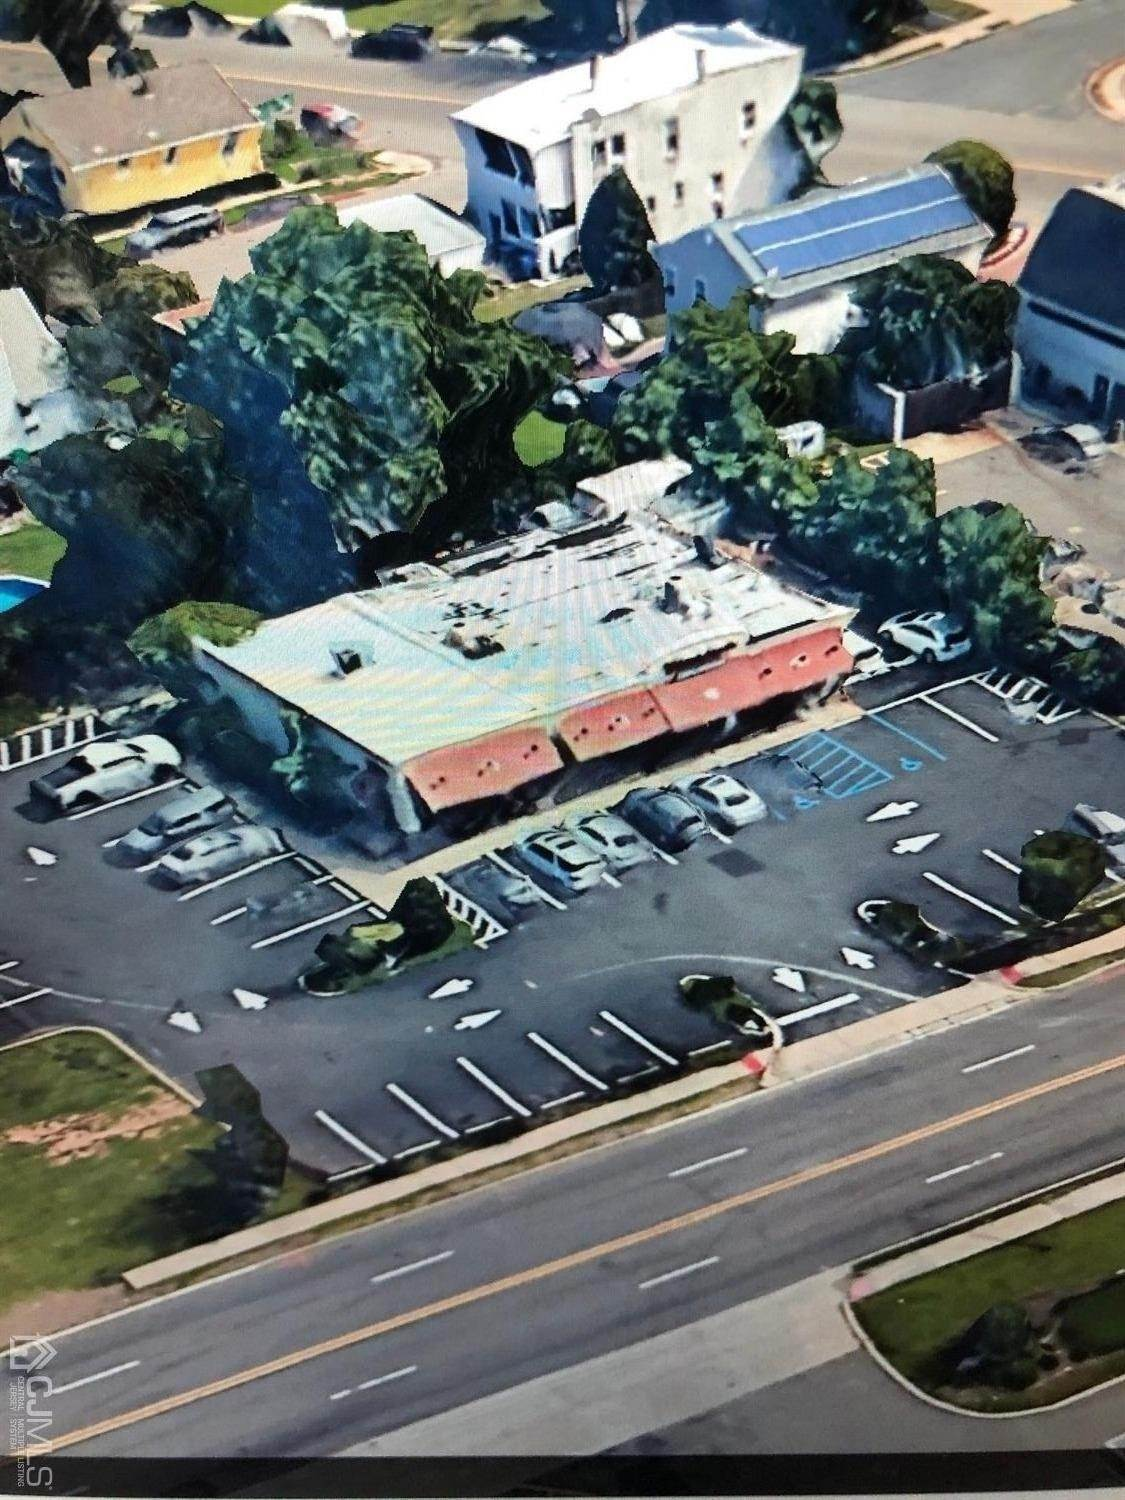 Commercial / Office for Sale at 22 W Pond Road Perth Amboy, New Jersey, 08861 United States